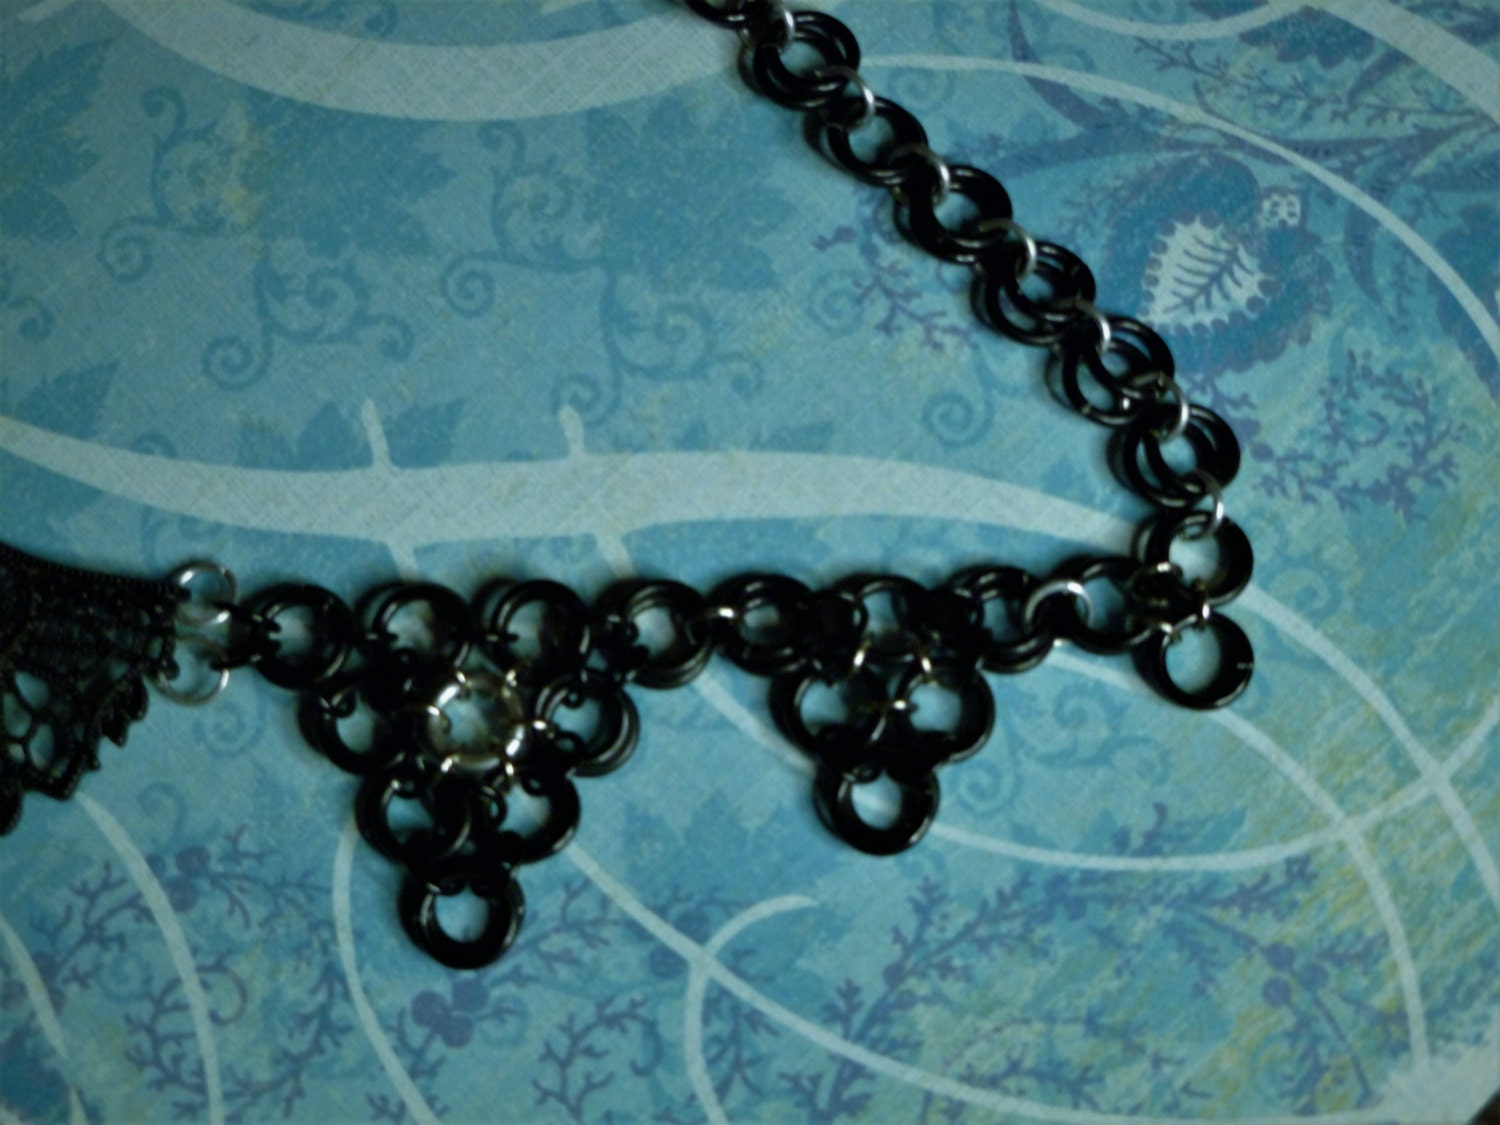 Cameo Necklace with Chainmail Accent Steampunk Inspired Style 20 Inches in length